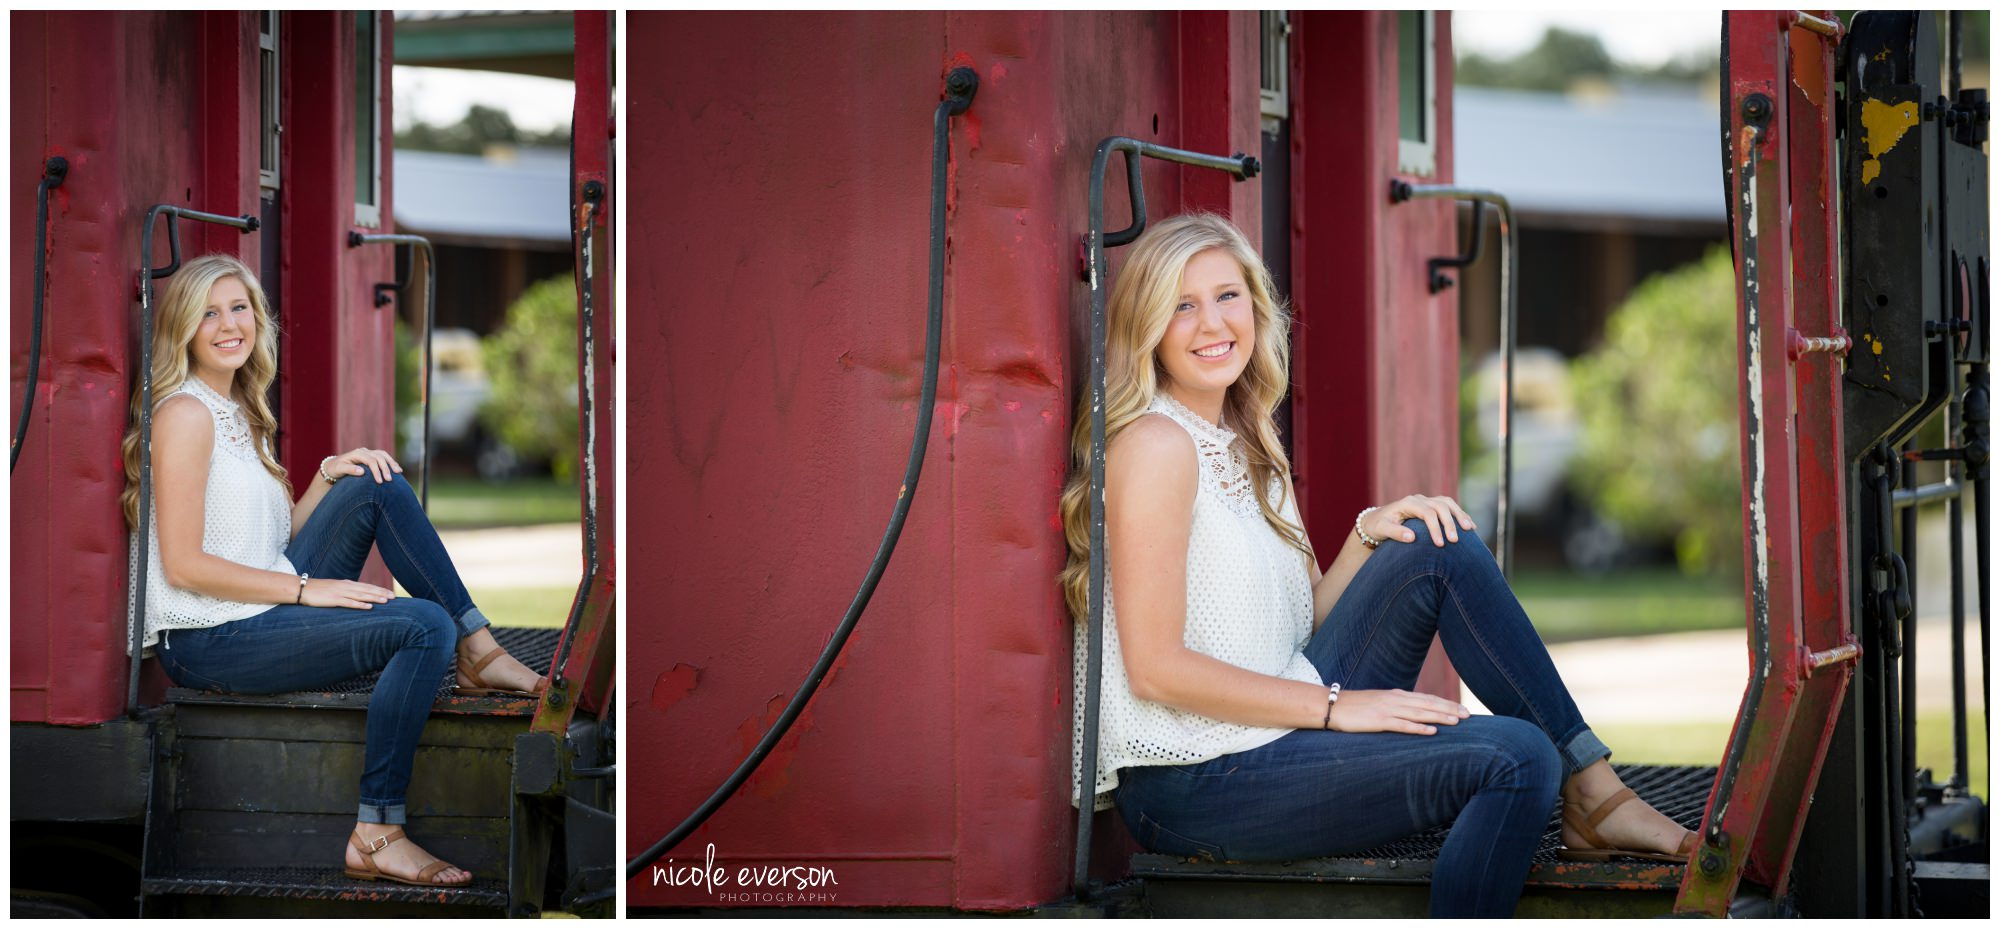 Senior portraits on train